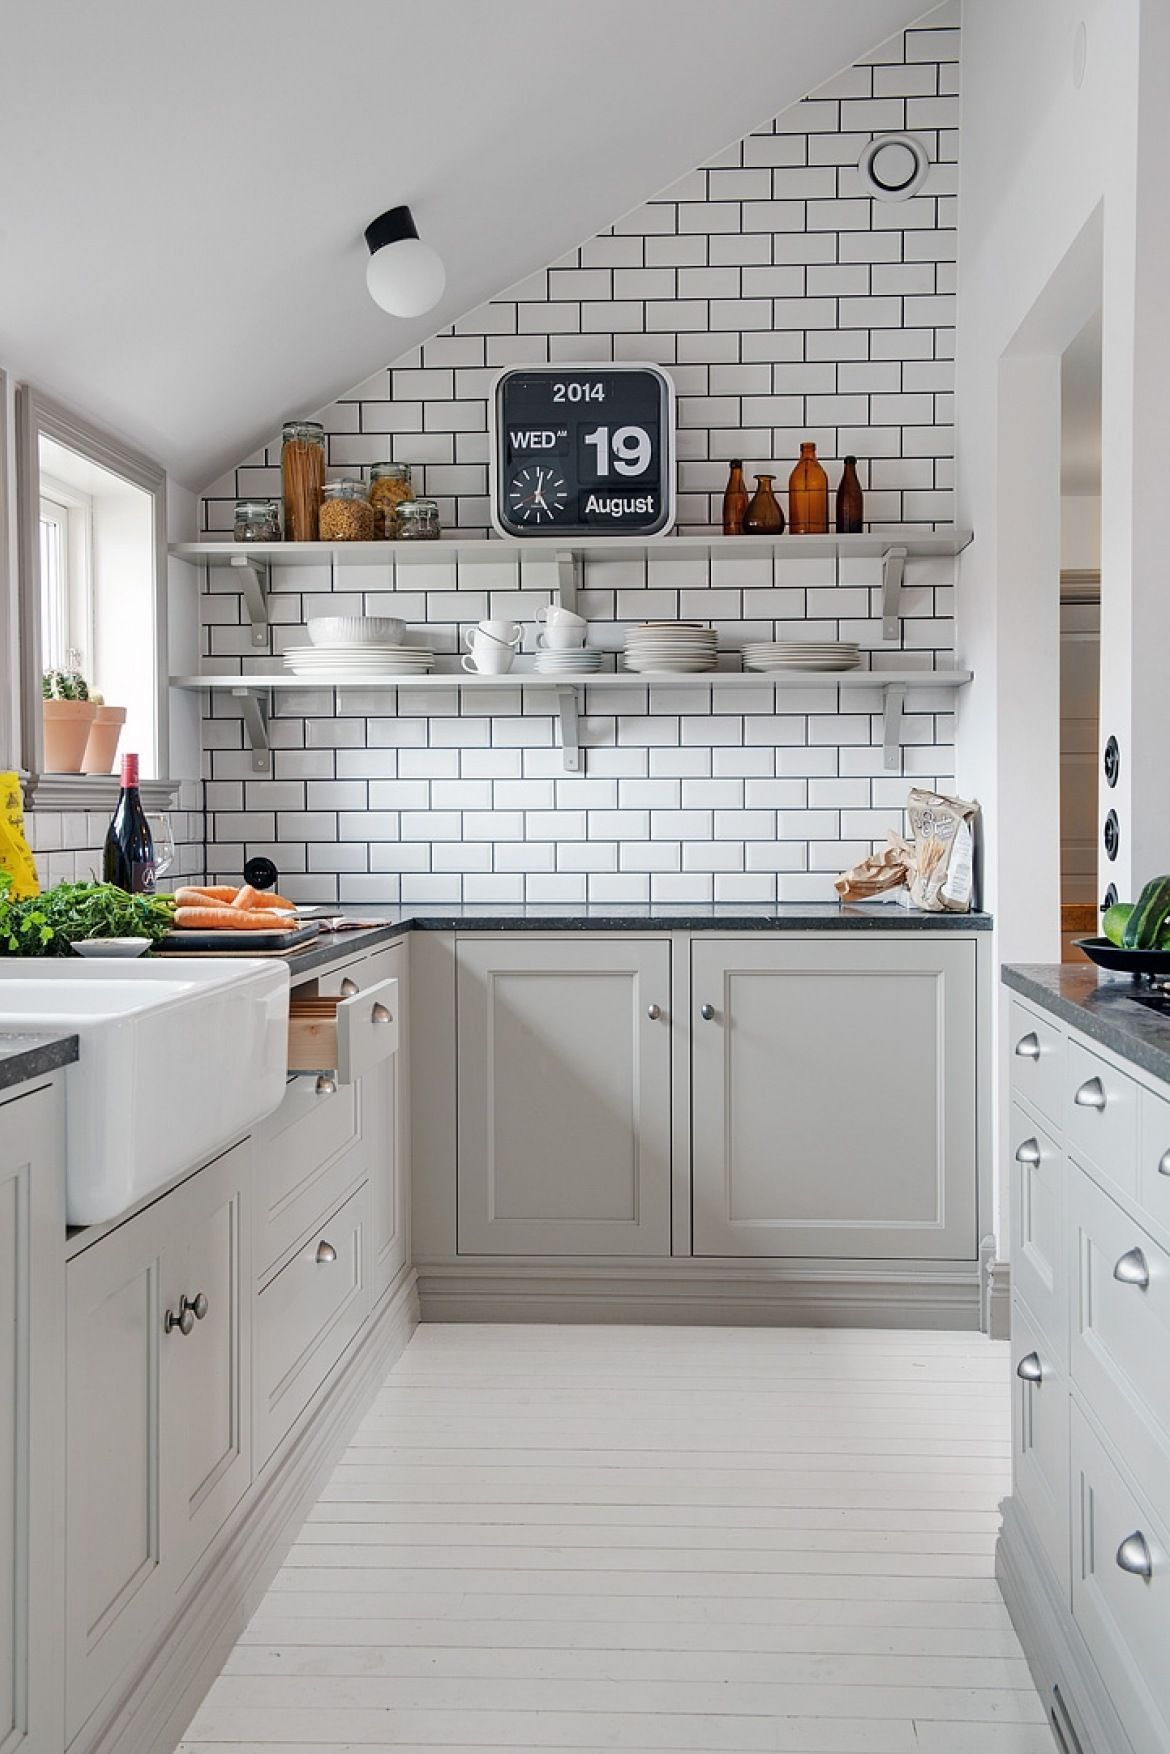 Ideas Photos And Practical Tips On Accessorizing Your Small Kitchen We Discuss Tile Styl Small Kitchen Inspiration Kitchen Remodel Small Kitchen Design Small